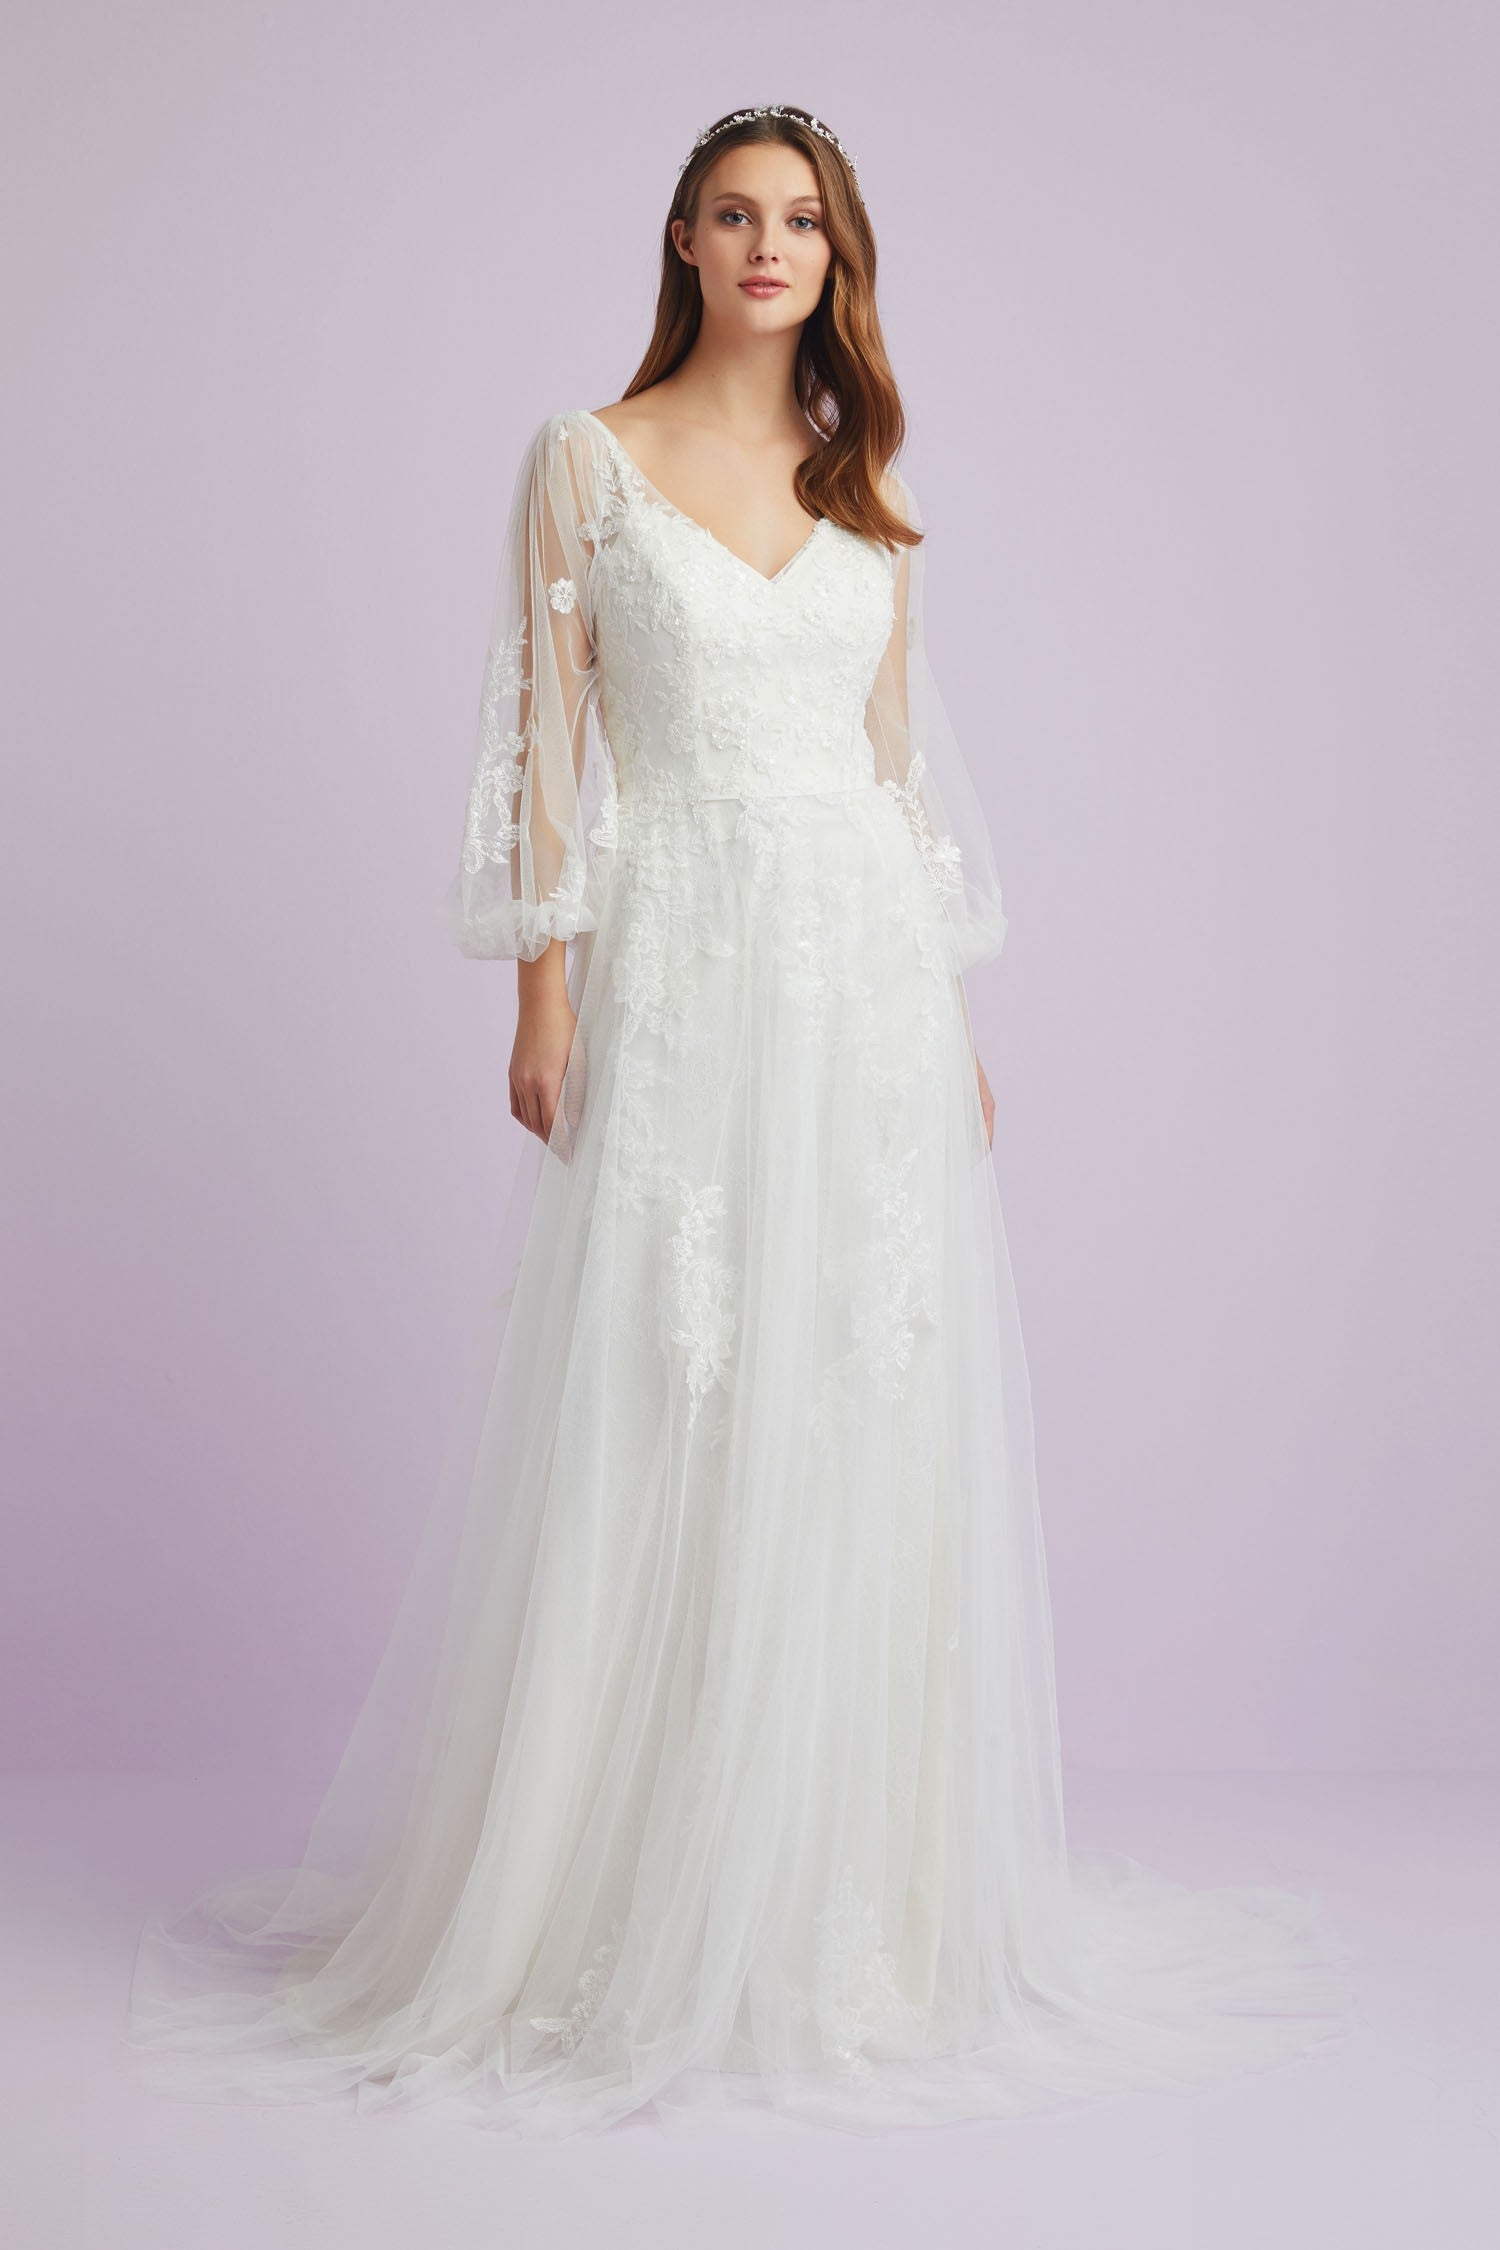 Wedding Dress With Sleeves.4xlwpd24345